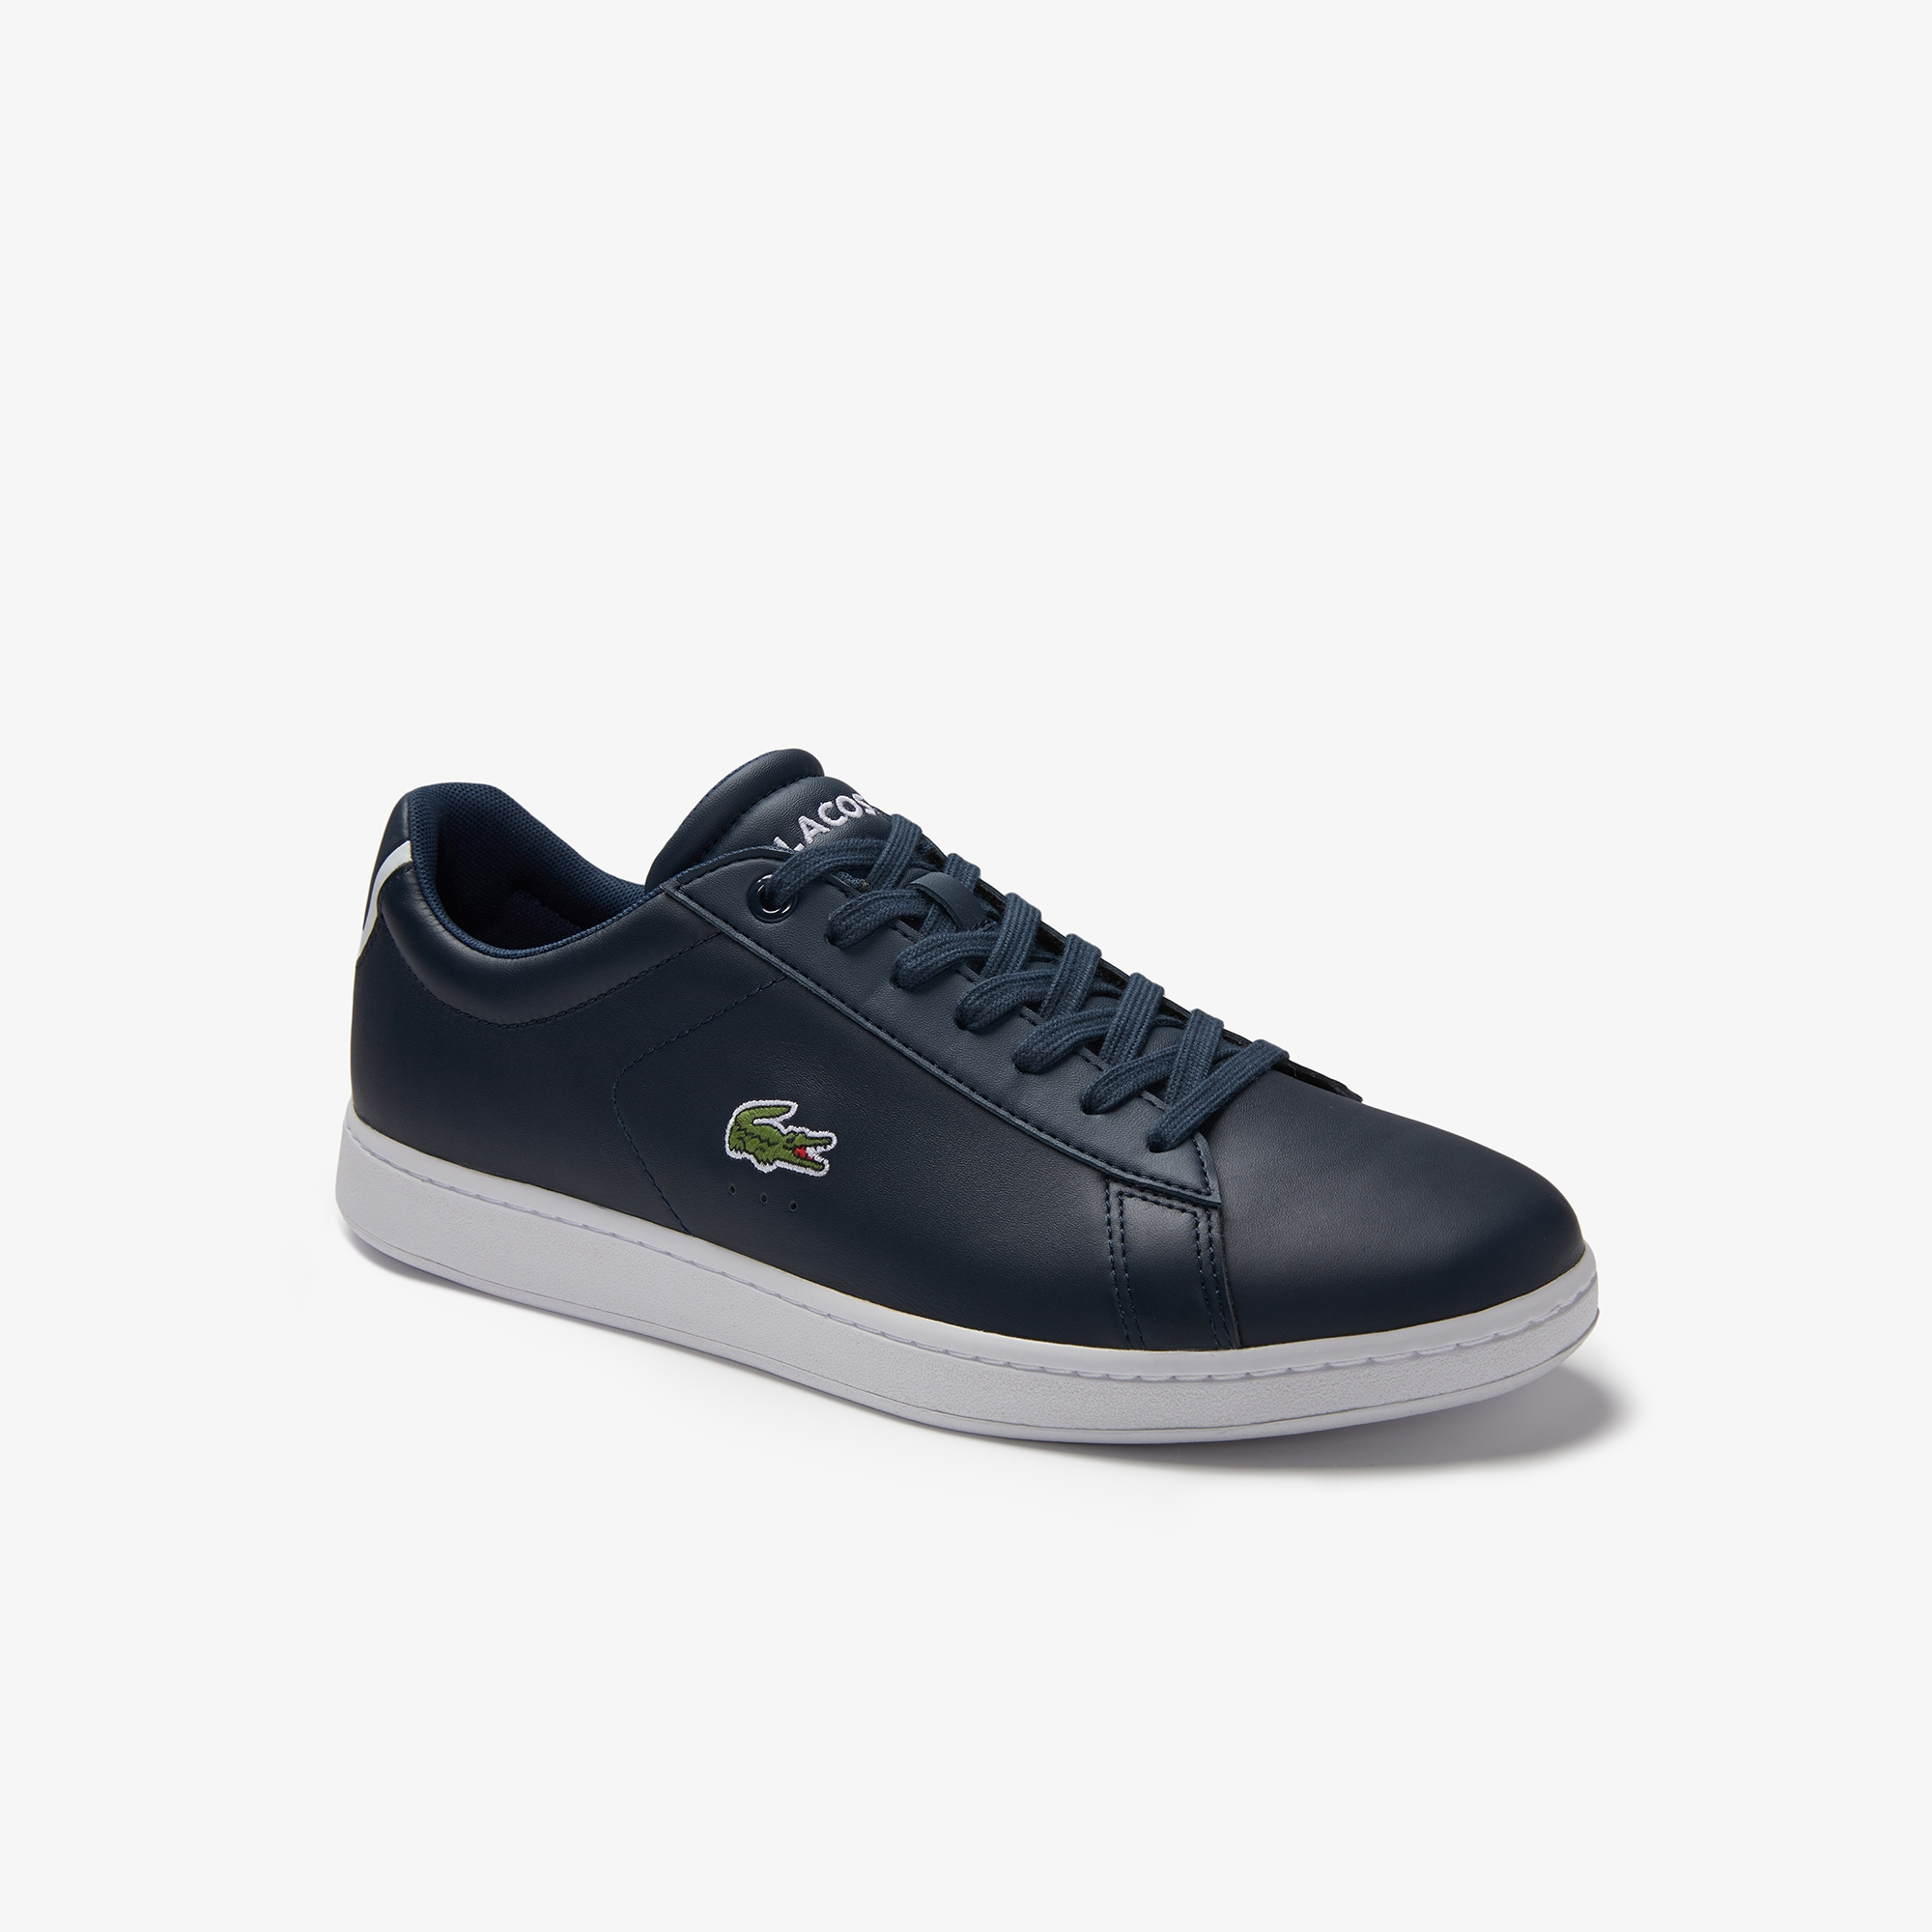 5f39a30202417a Trainers for men